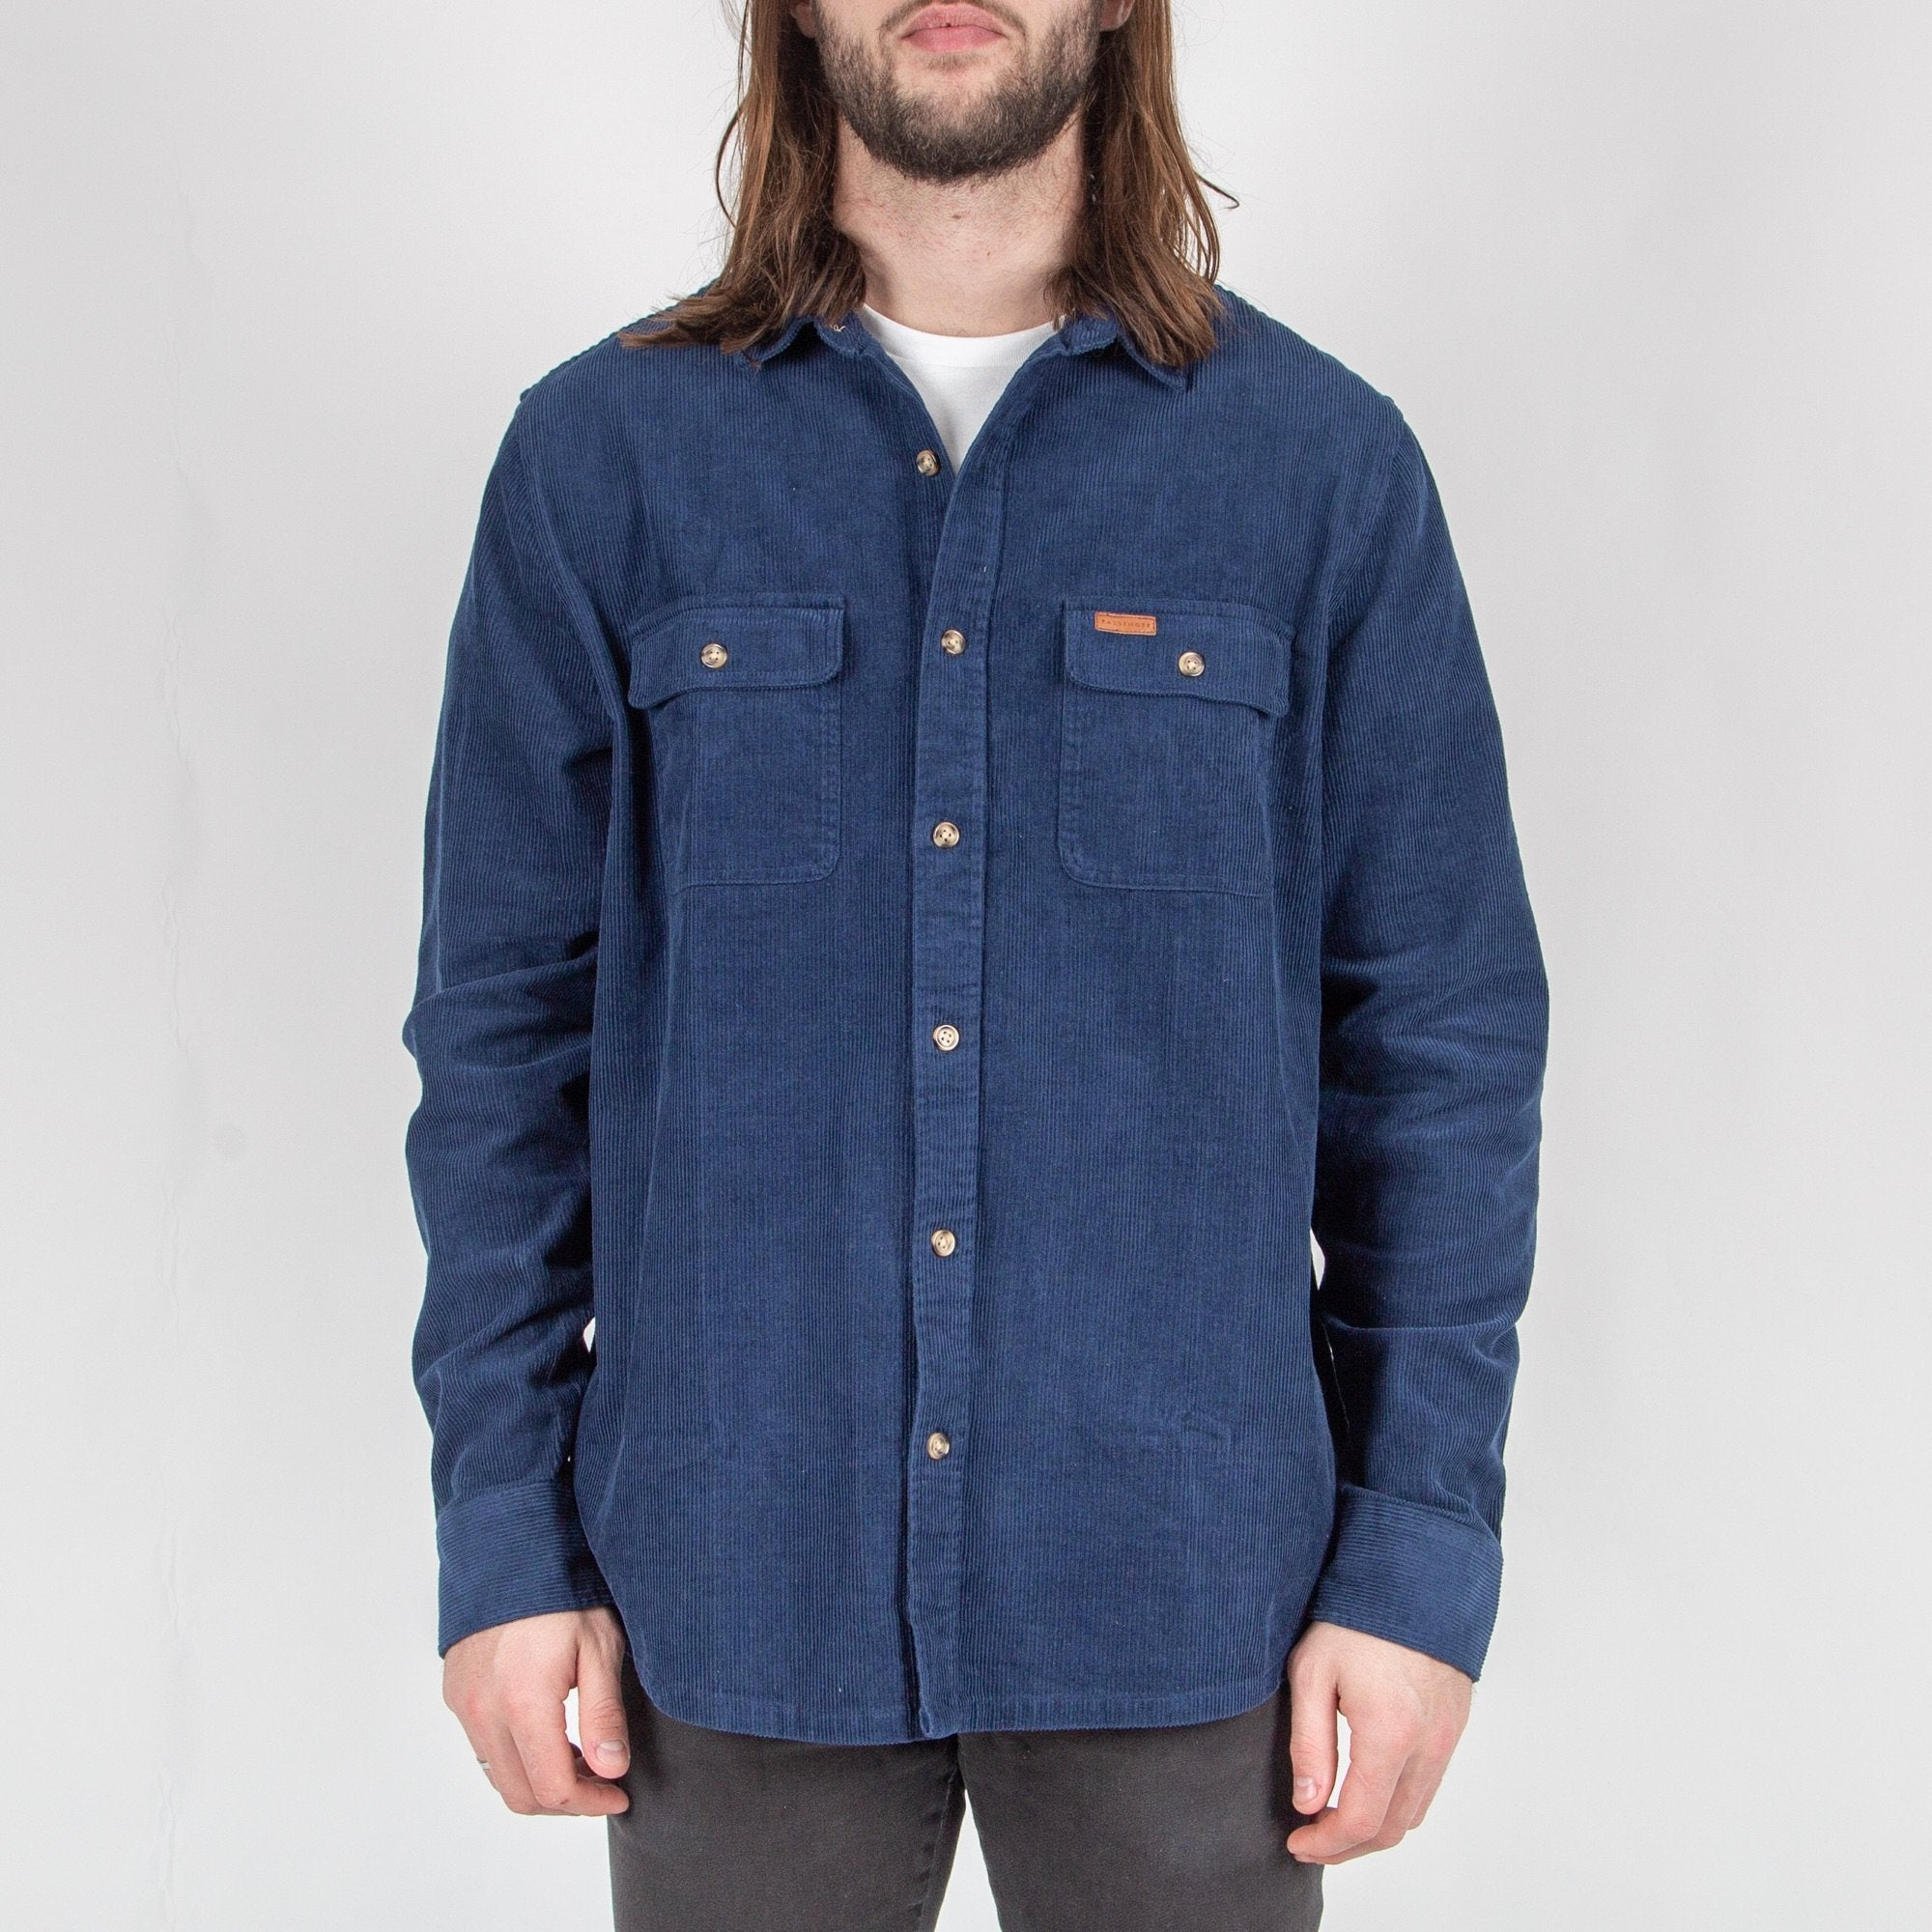 Backcountry Cord Shirt - Dark Denim image 5